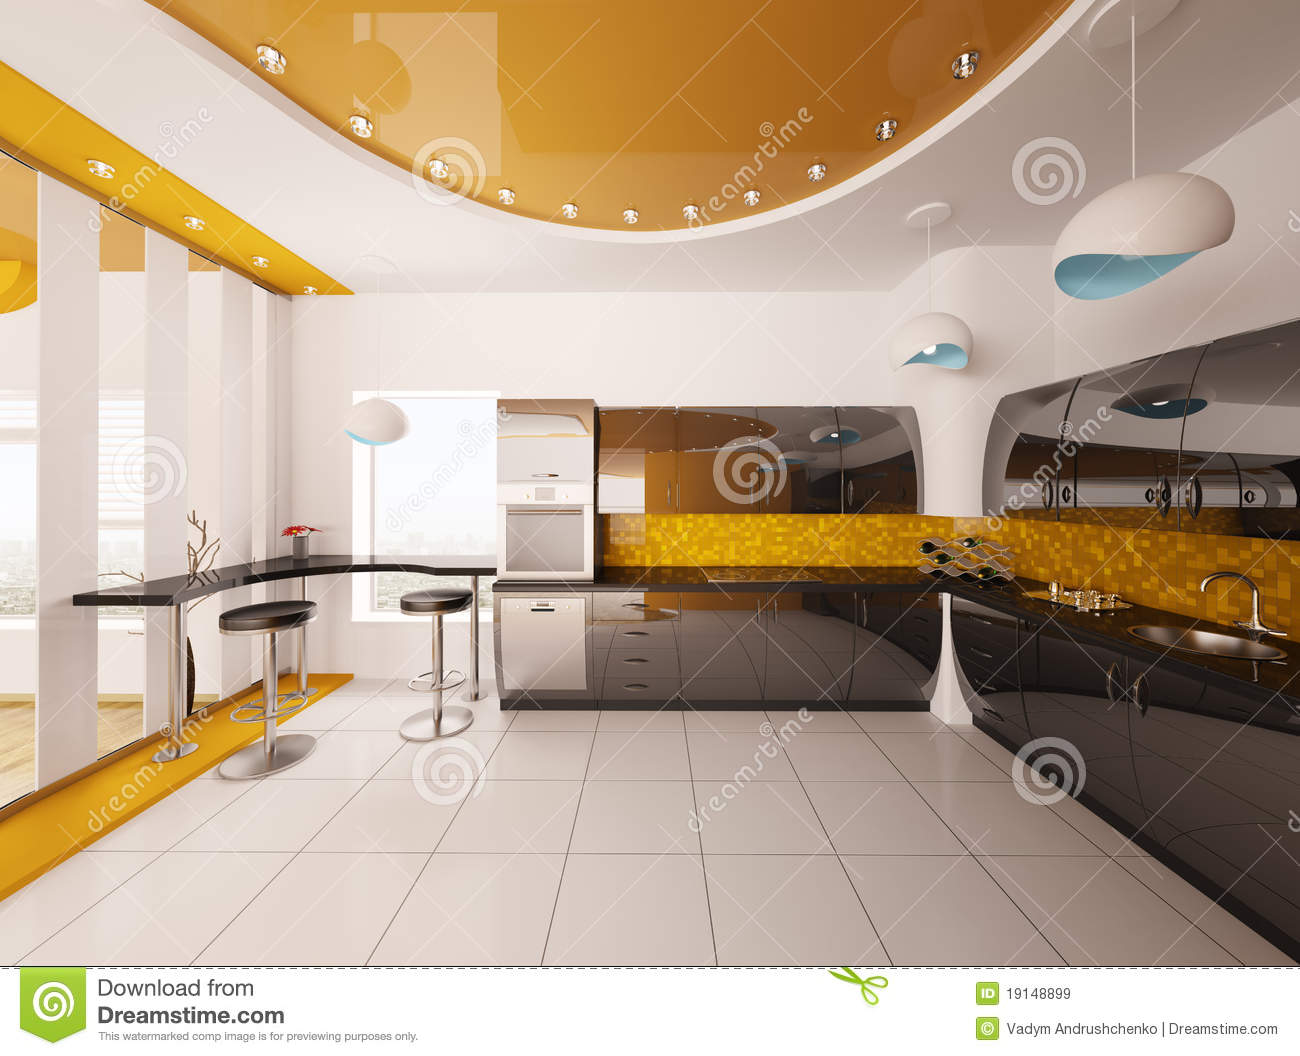 Interior design of modern kitchen 3d render stock illustration image 19148899 - Modern interior kitchen design ...